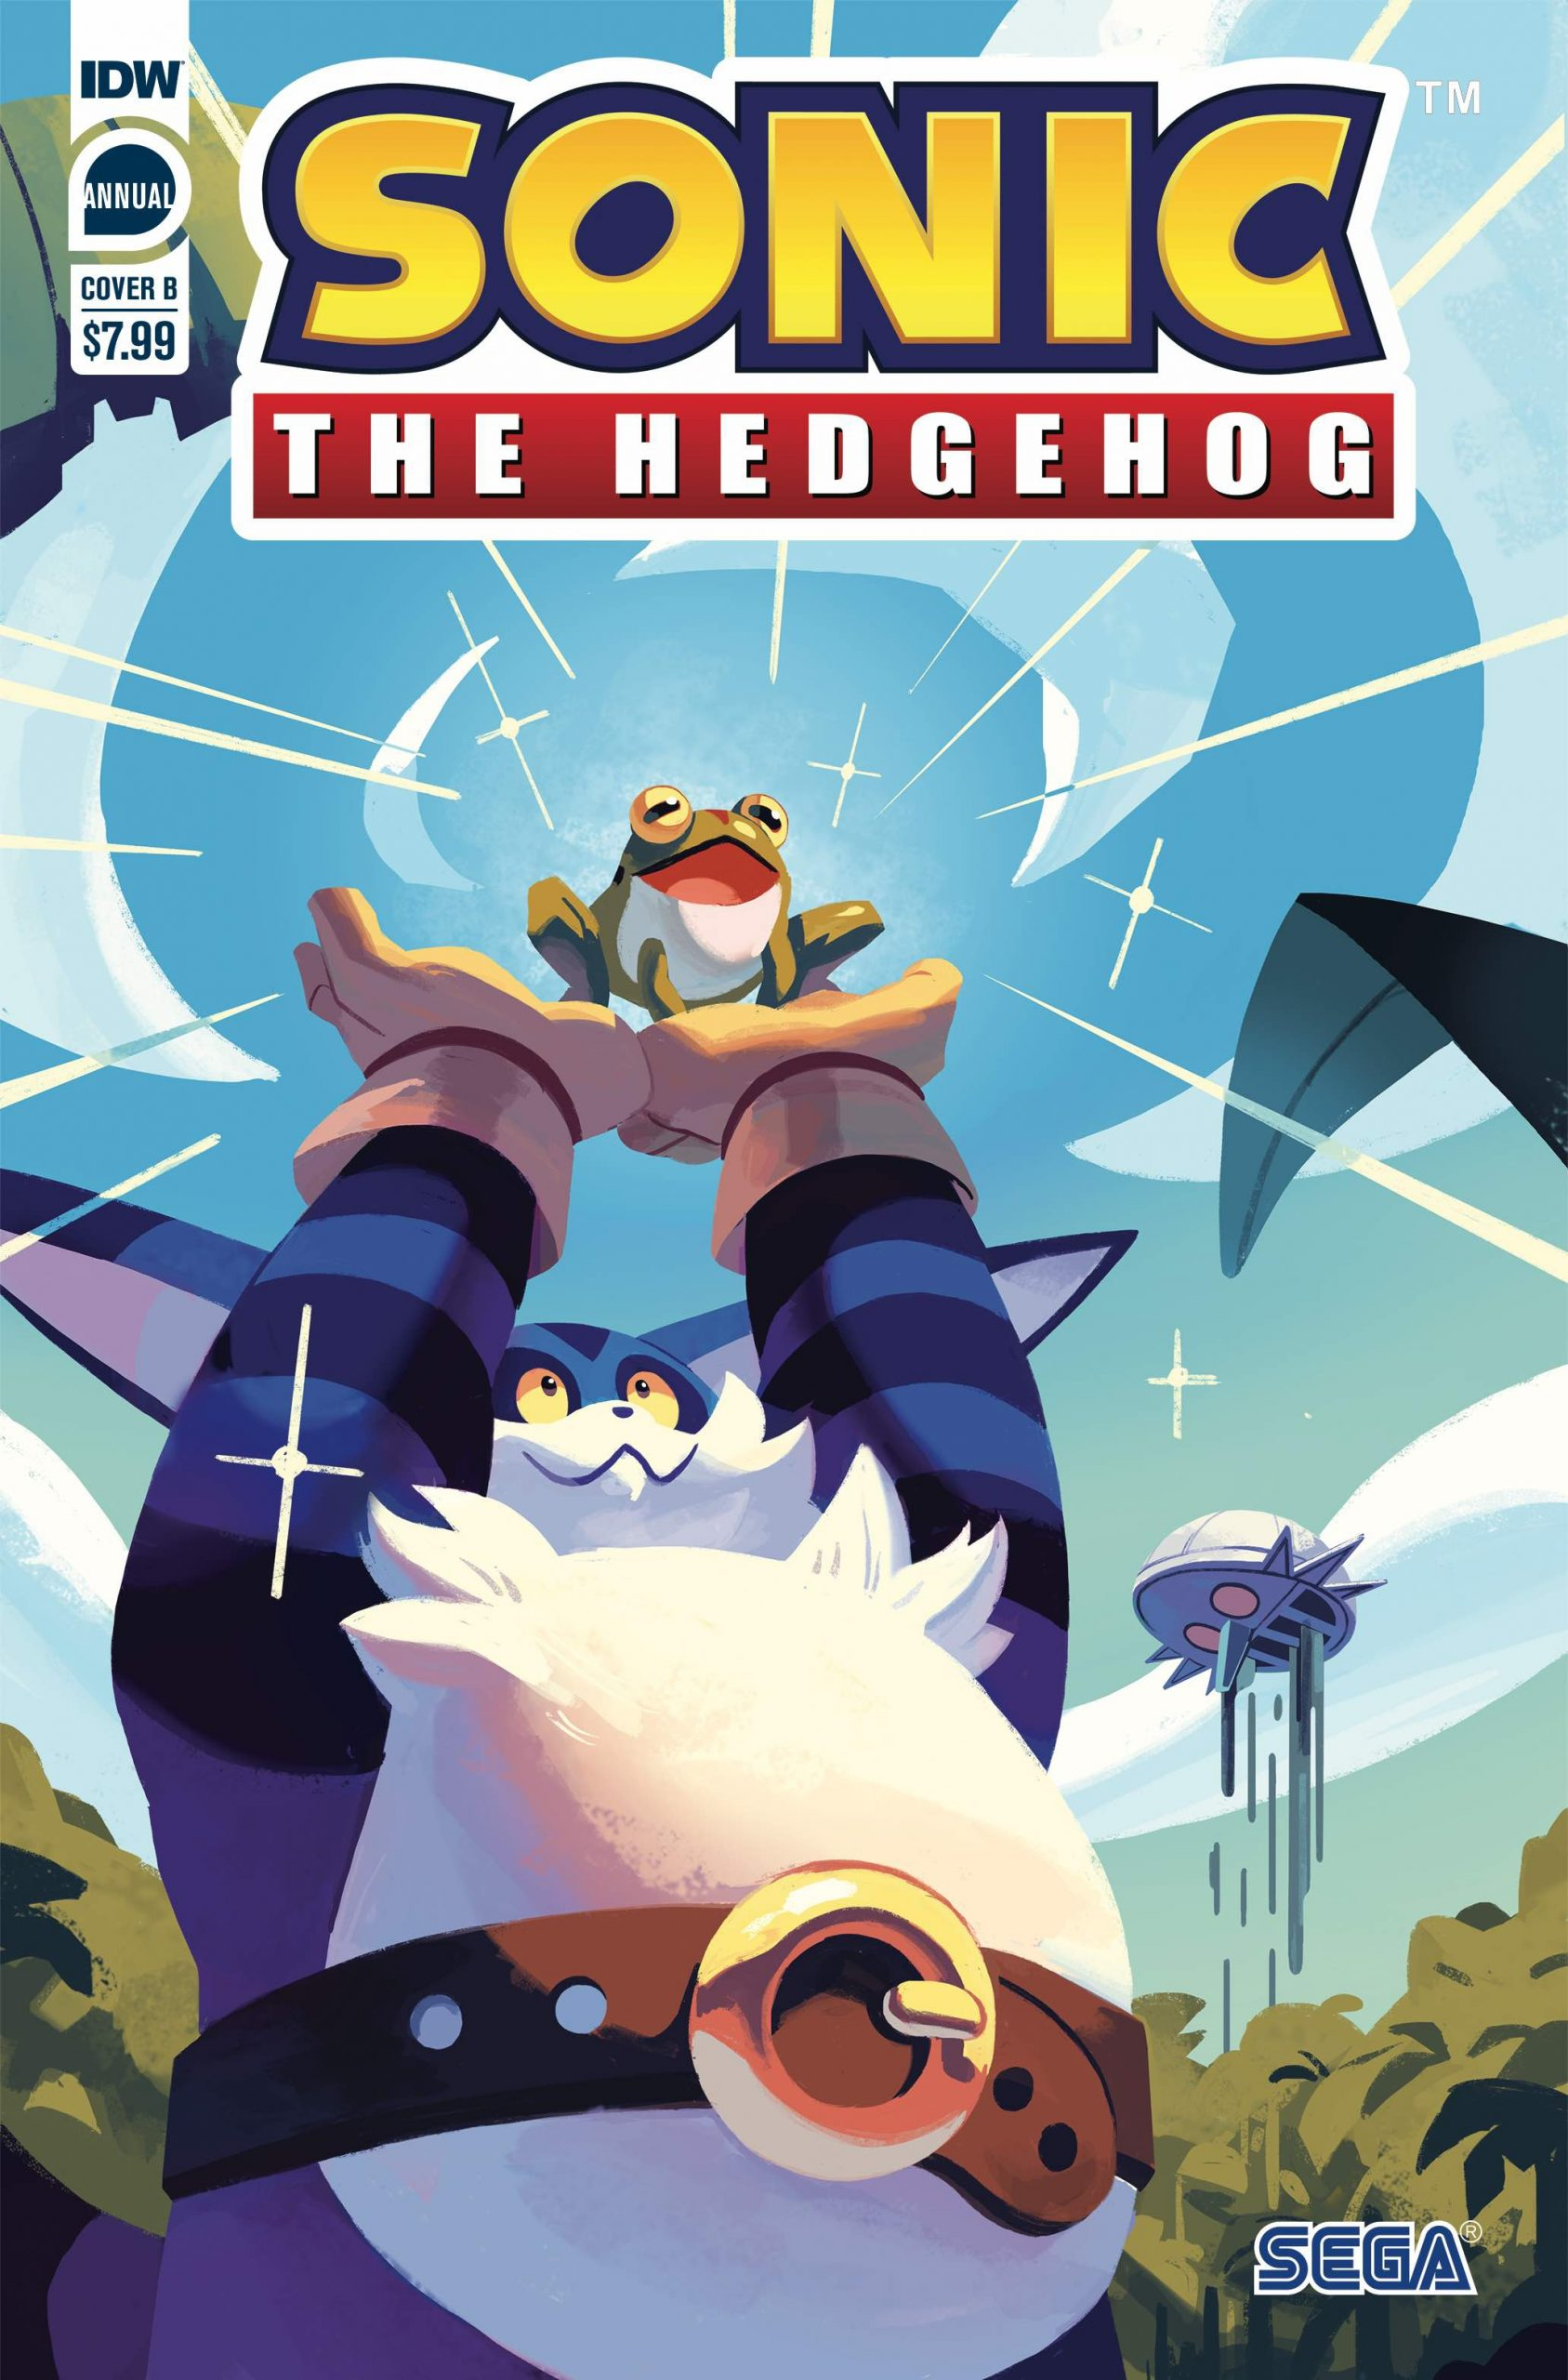 Sonic the Hedgehog Annual 2020 Cover B